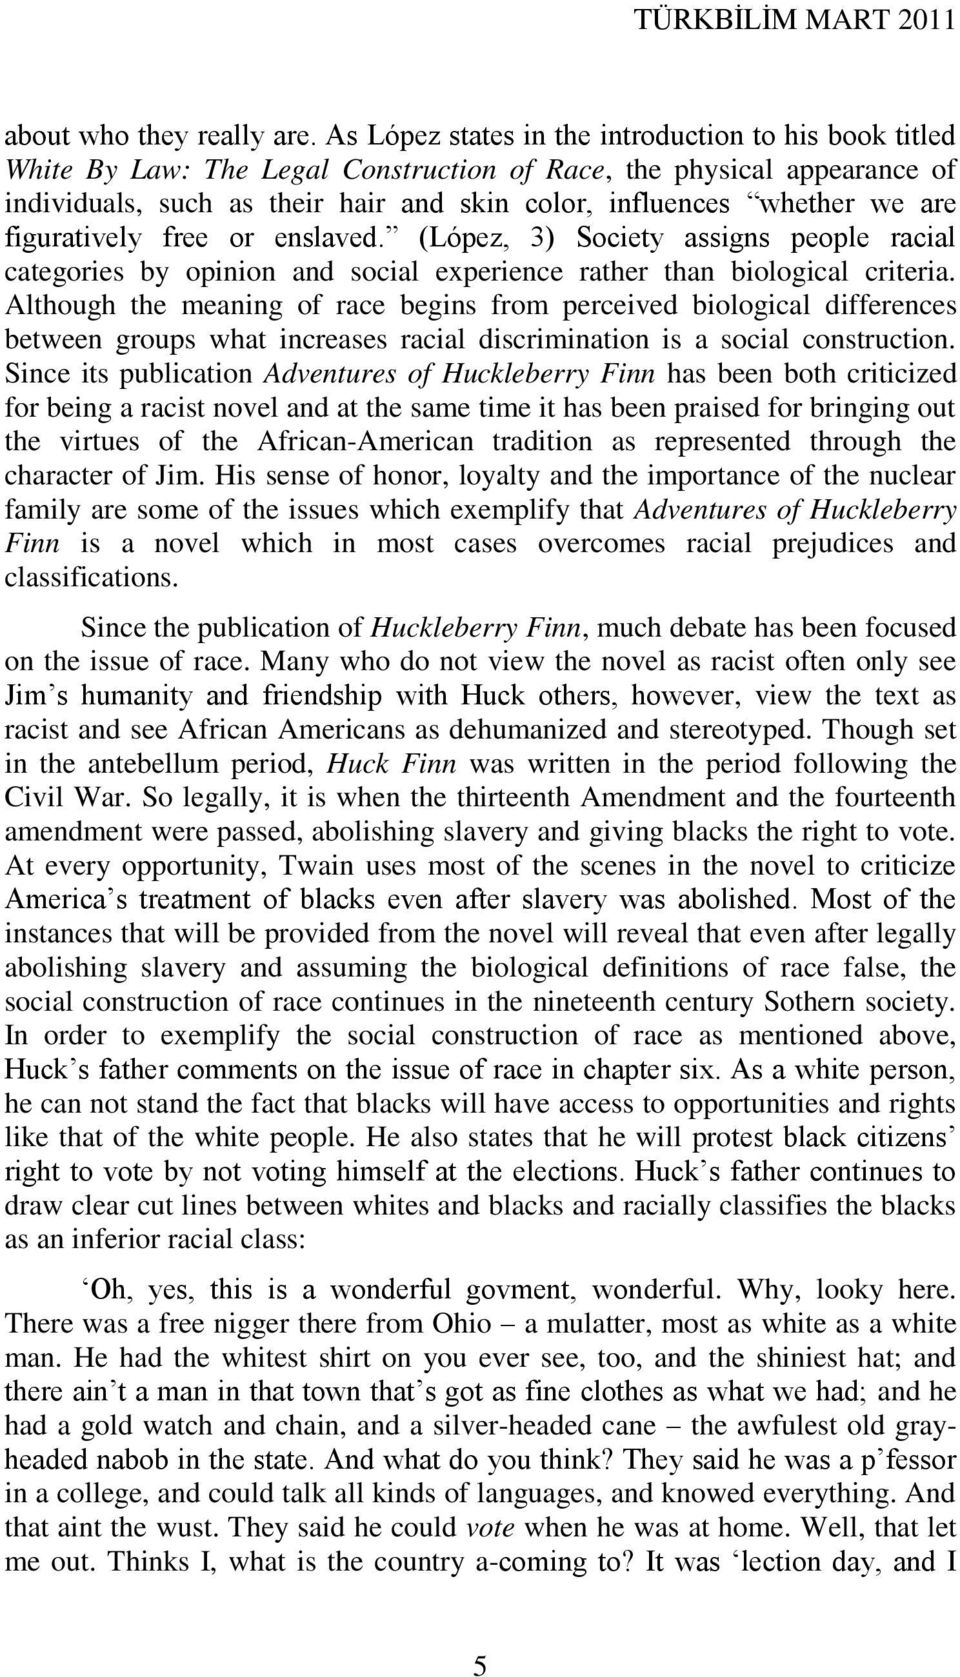 are figuratively free or enslaved. (López, 3) Society assigns people racial categories by opinion and social experience rather than biological criteria.